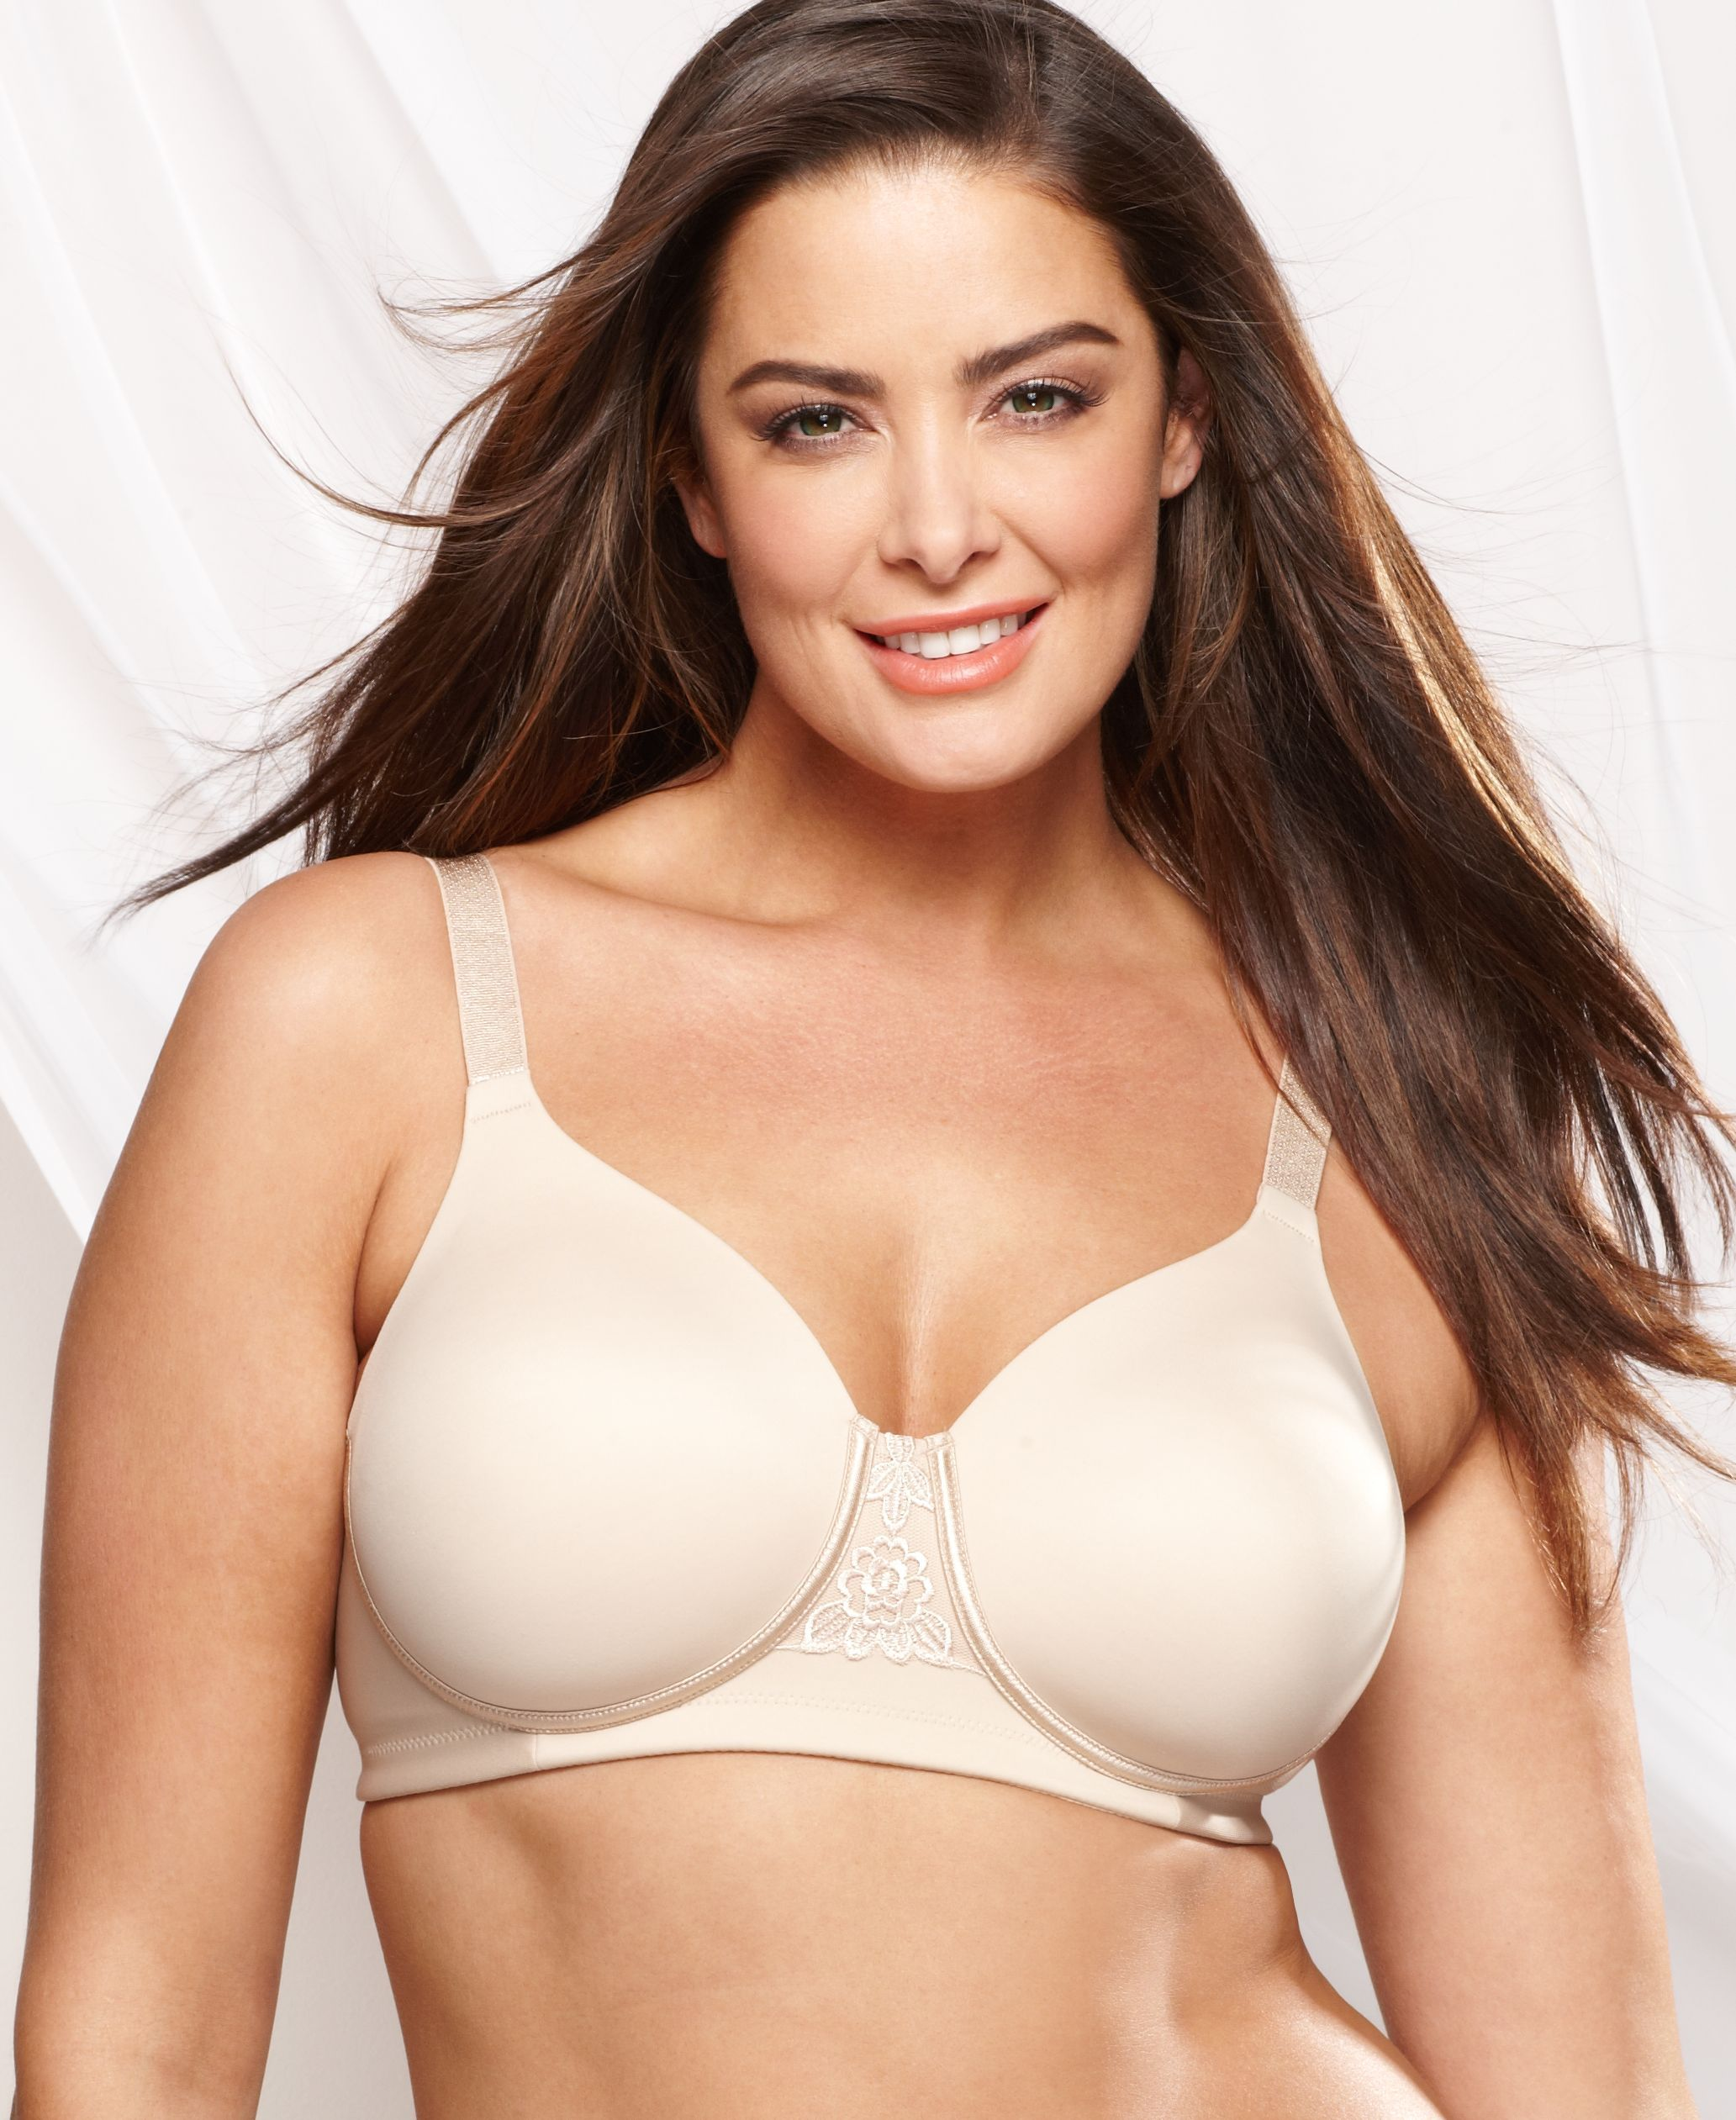 d5ac70f37d ... the Best Minimizer Bras. Vanity Fair Full Figure Back Smoother Wireless  Bra 71380